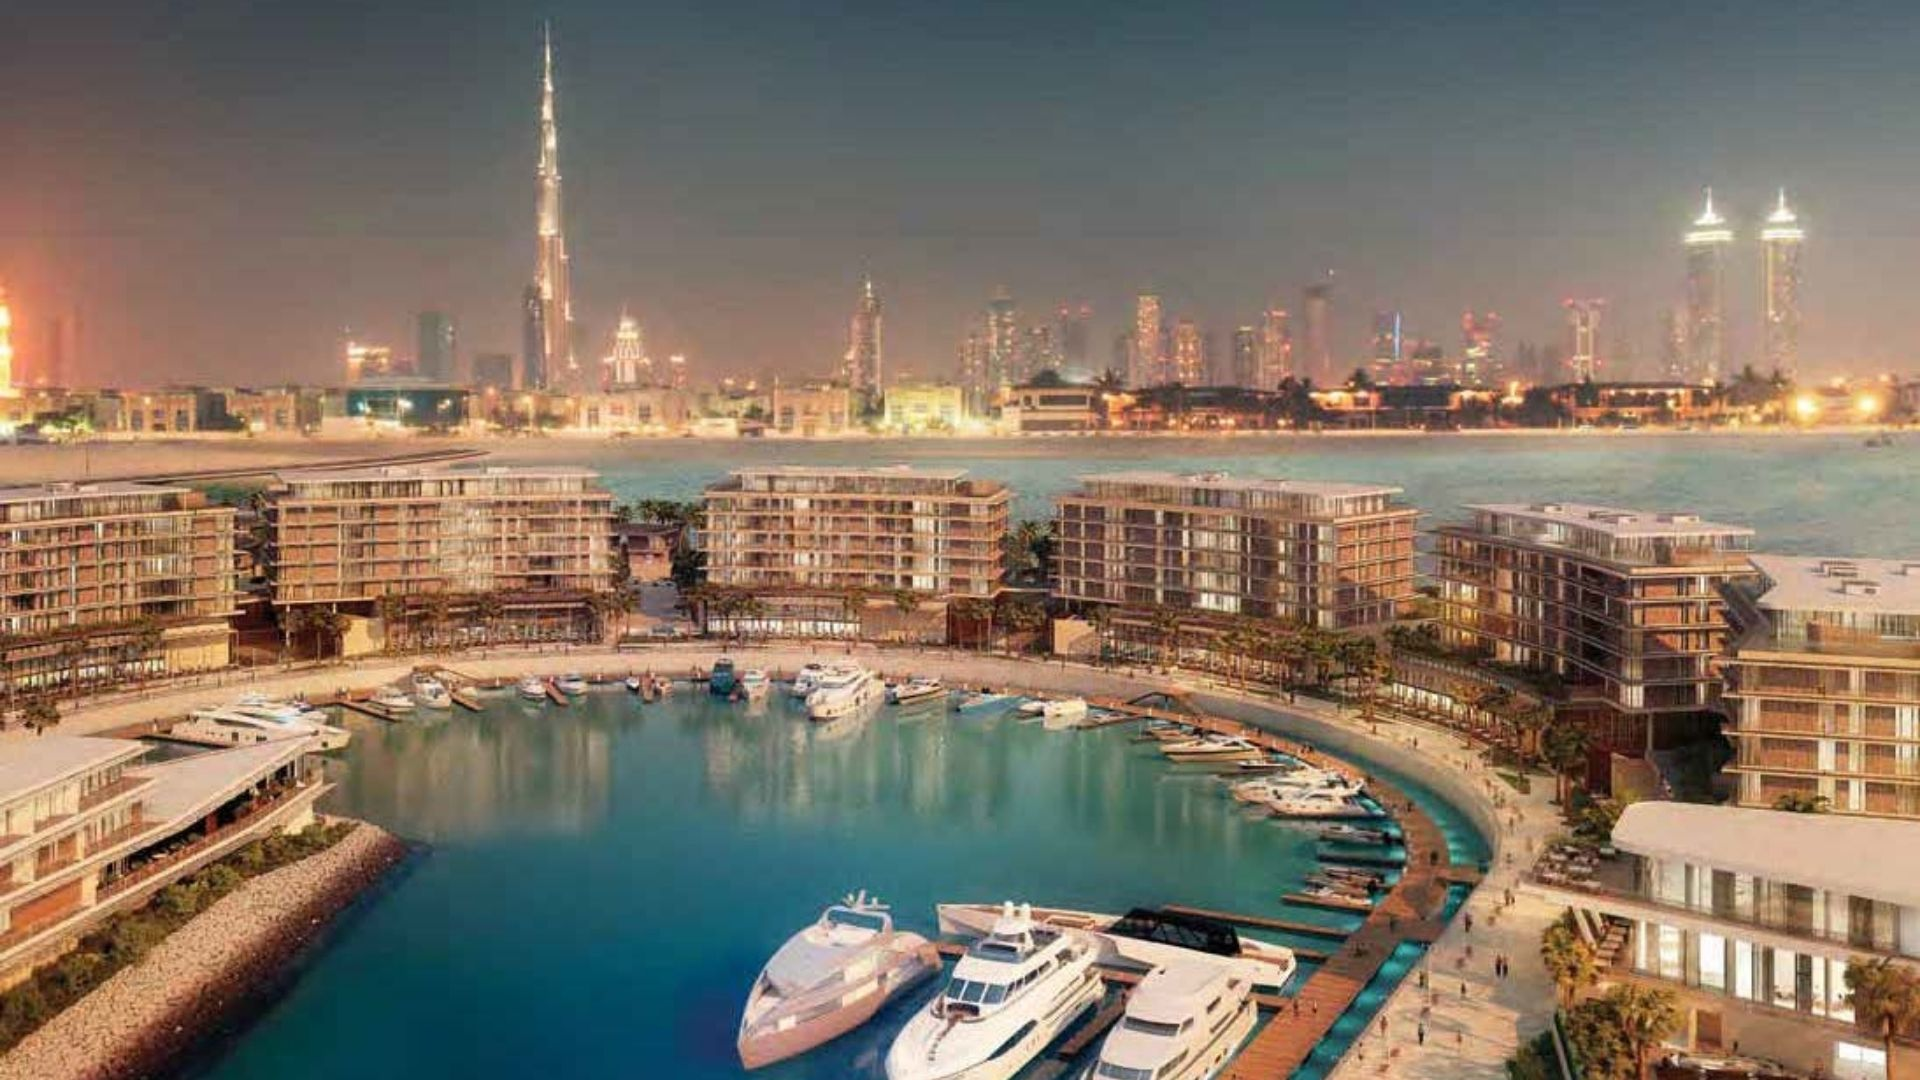 6 - Live like Royalty in These Amazing Luxury Homes in Dubai